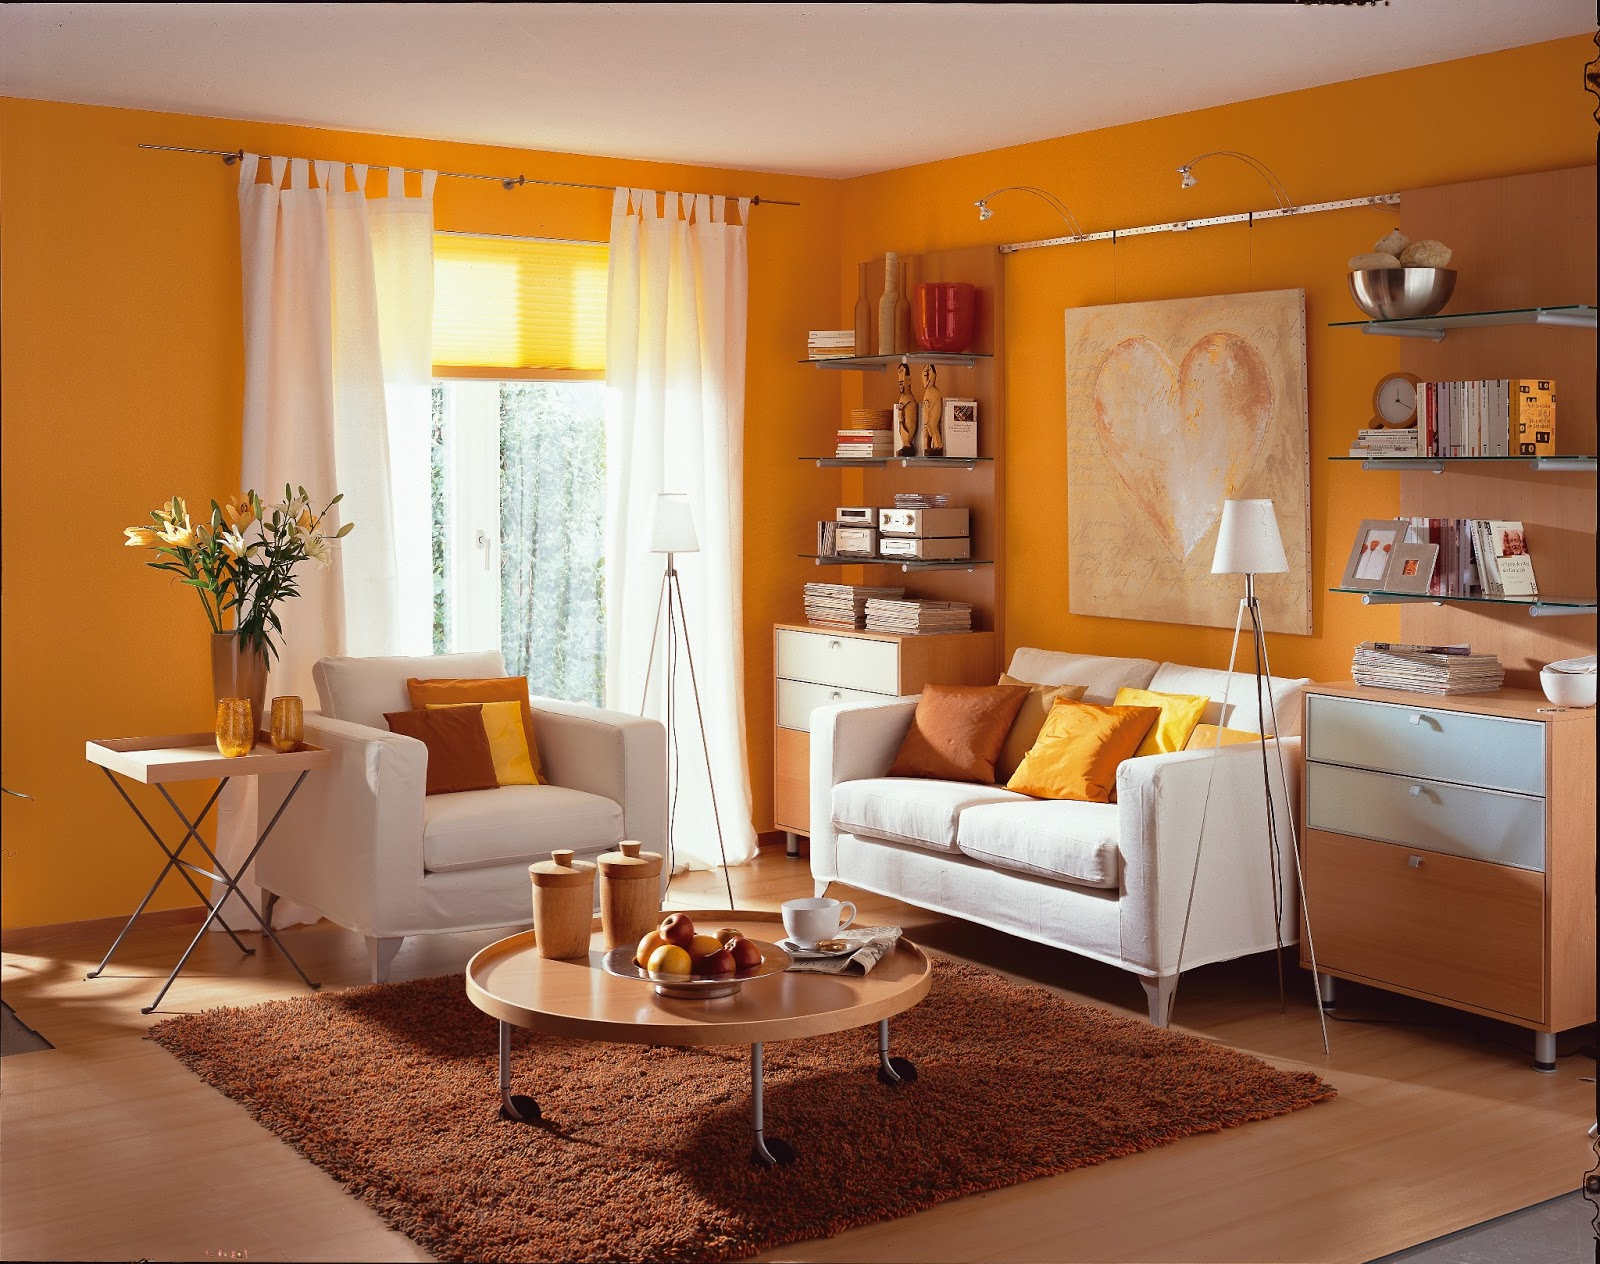 Salas color naranja ideas para decorar dise ar y for Decoracion paredes sala